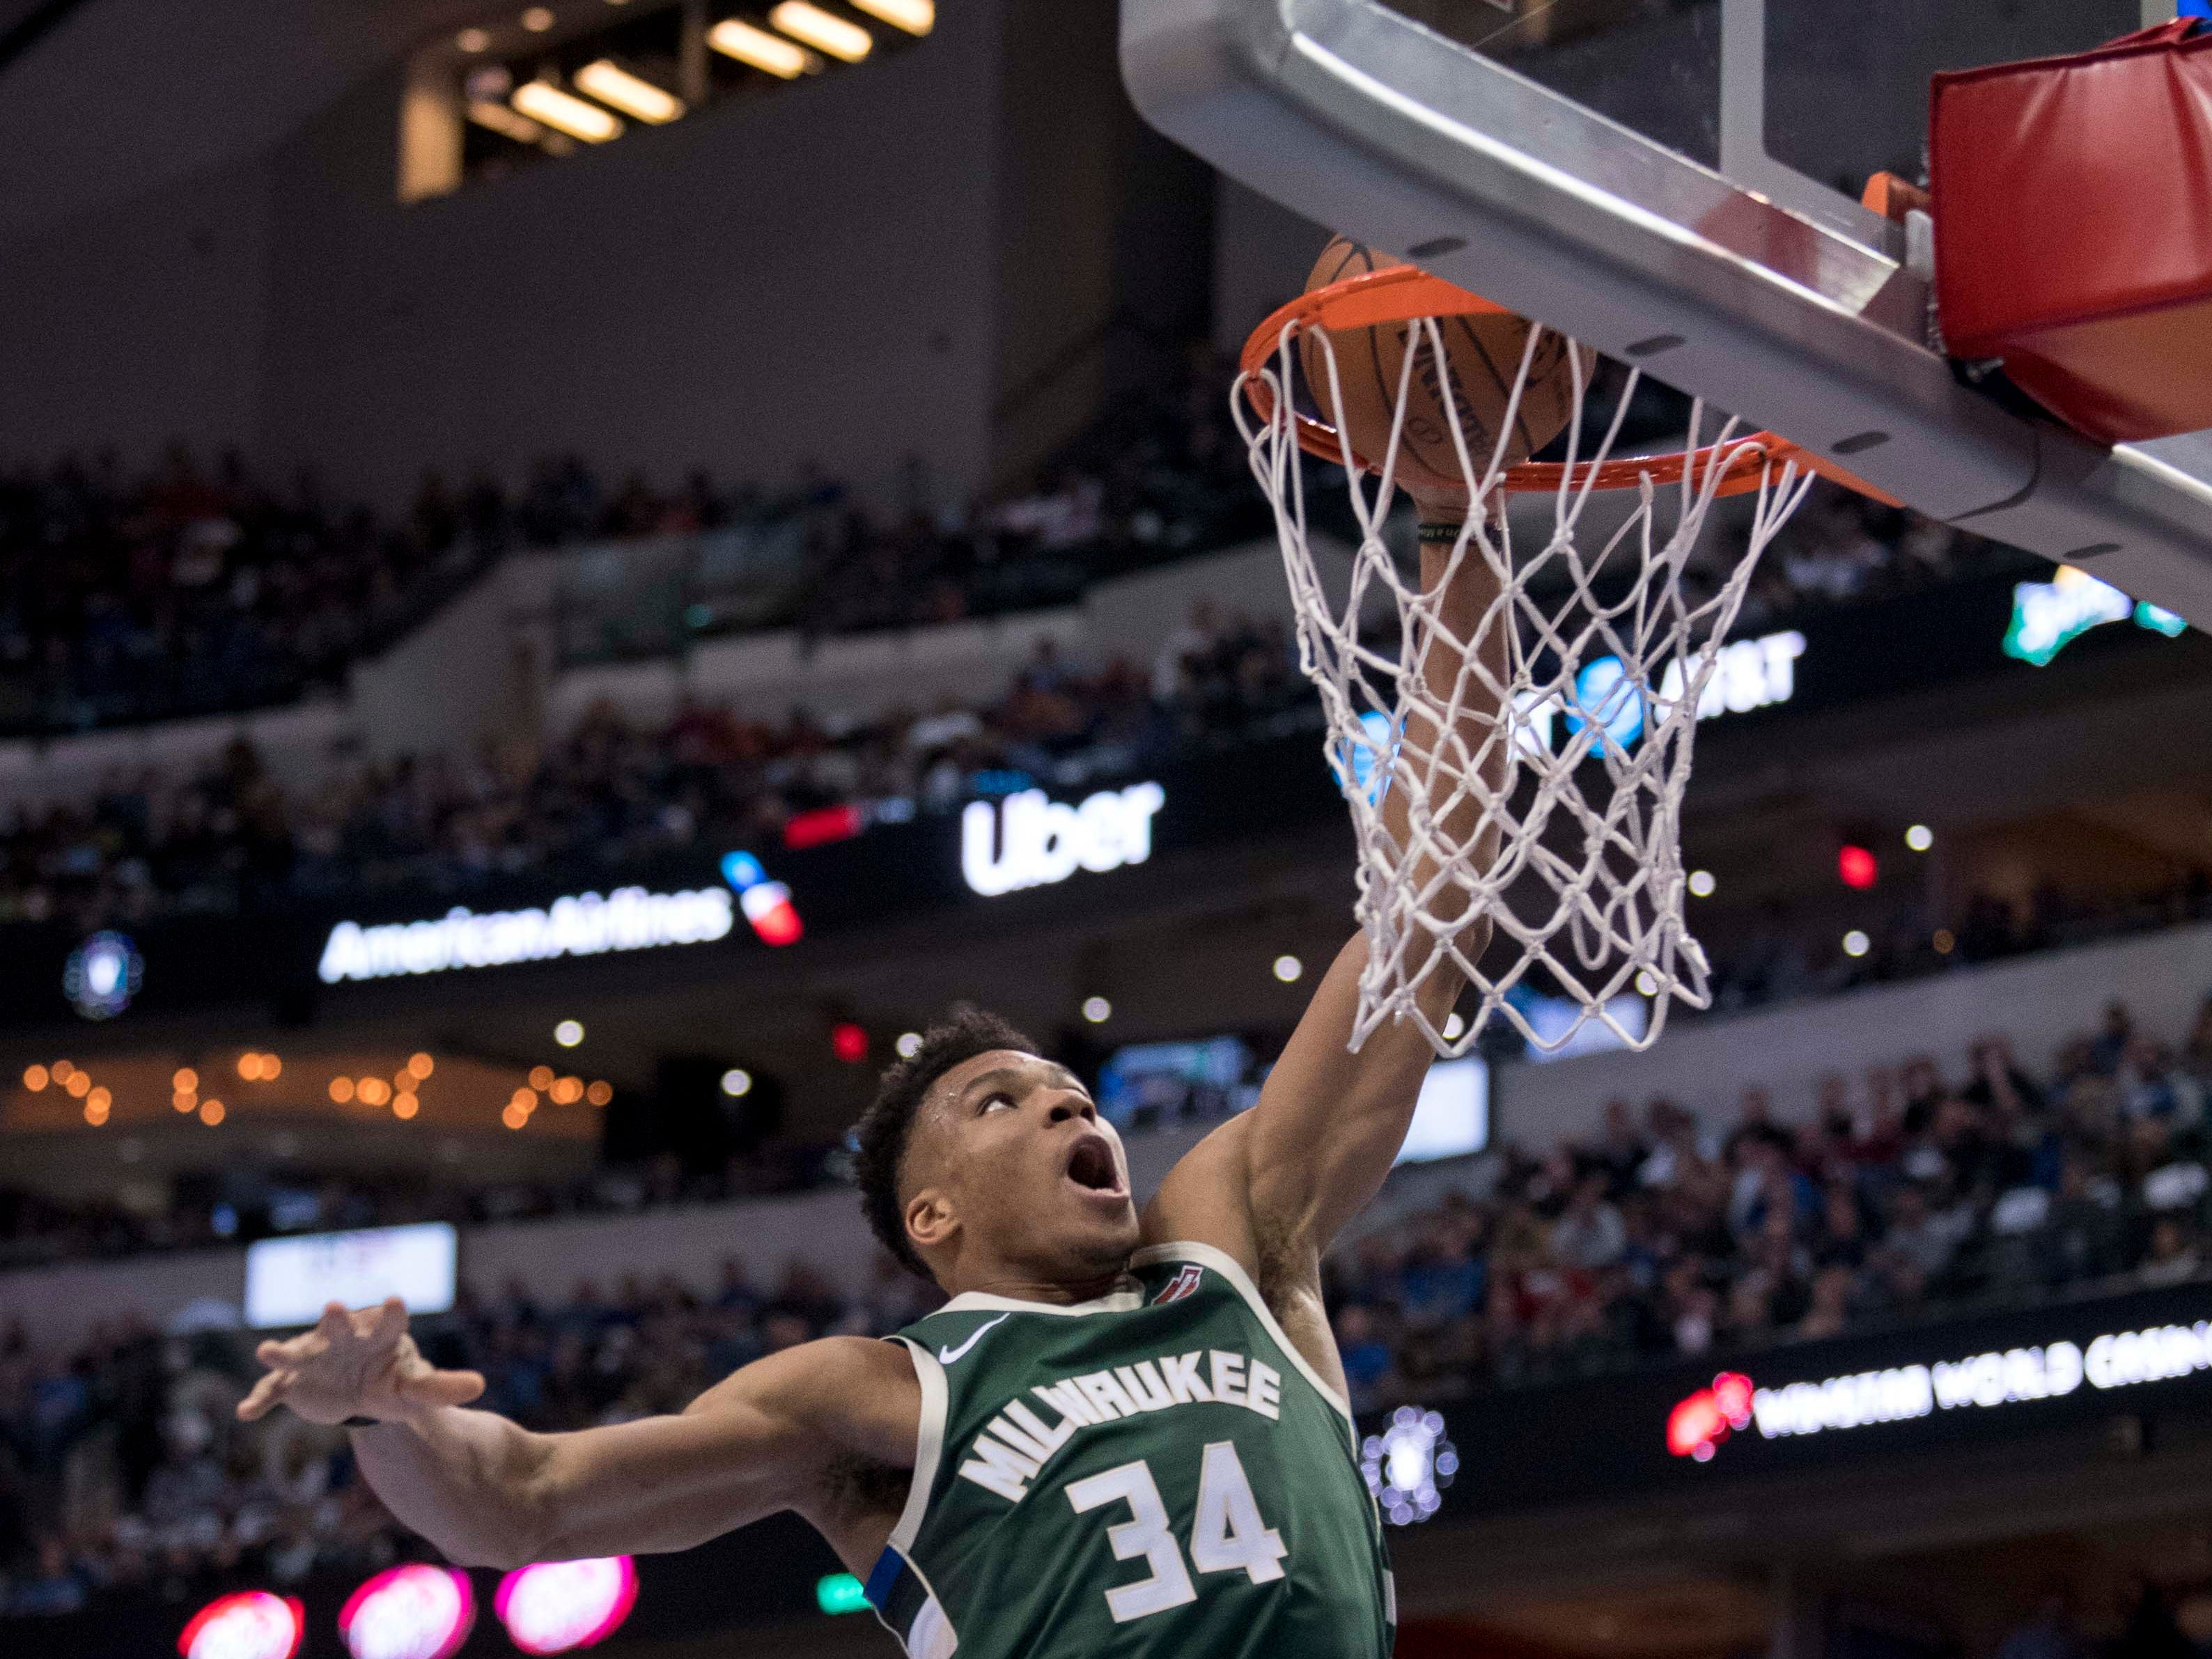 Bucks forward Giannis Antetokounmpo hammers down one of the many dunks he had Friday night against the Mavericks.